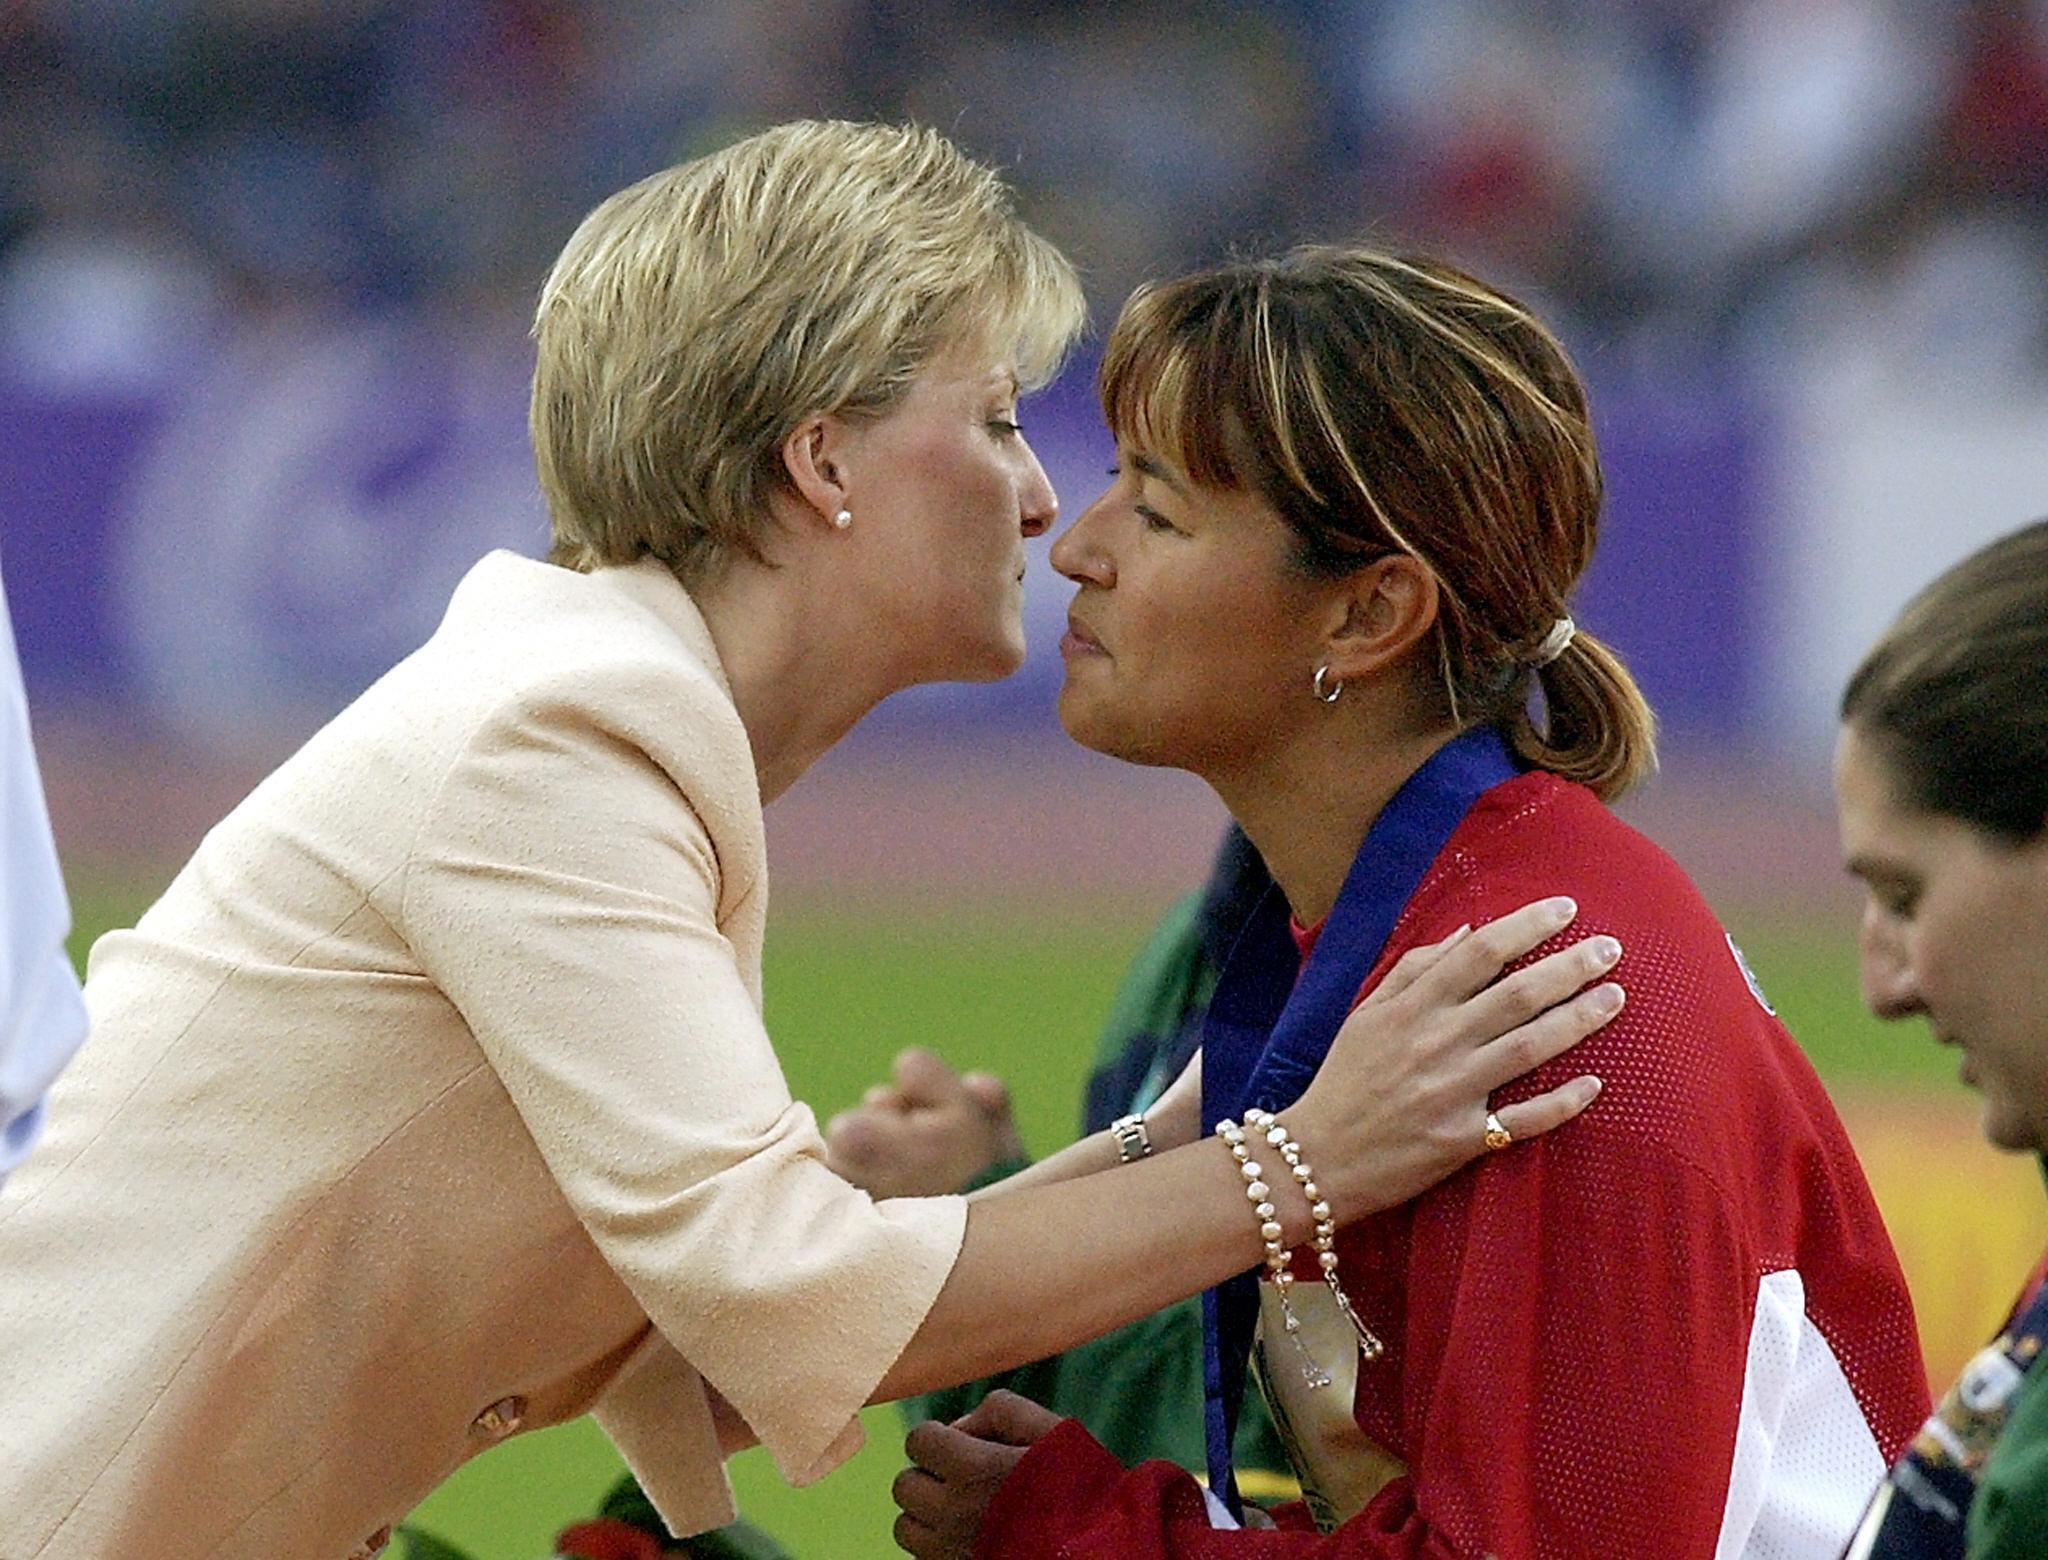 Chantal Petitclerc receives her 2002 Commonwealth Games gold medal from the  Countess of Wessex after winning the 800m - the first time an event for an athlete with a disability had been part of the officiall programme ©Getty Images